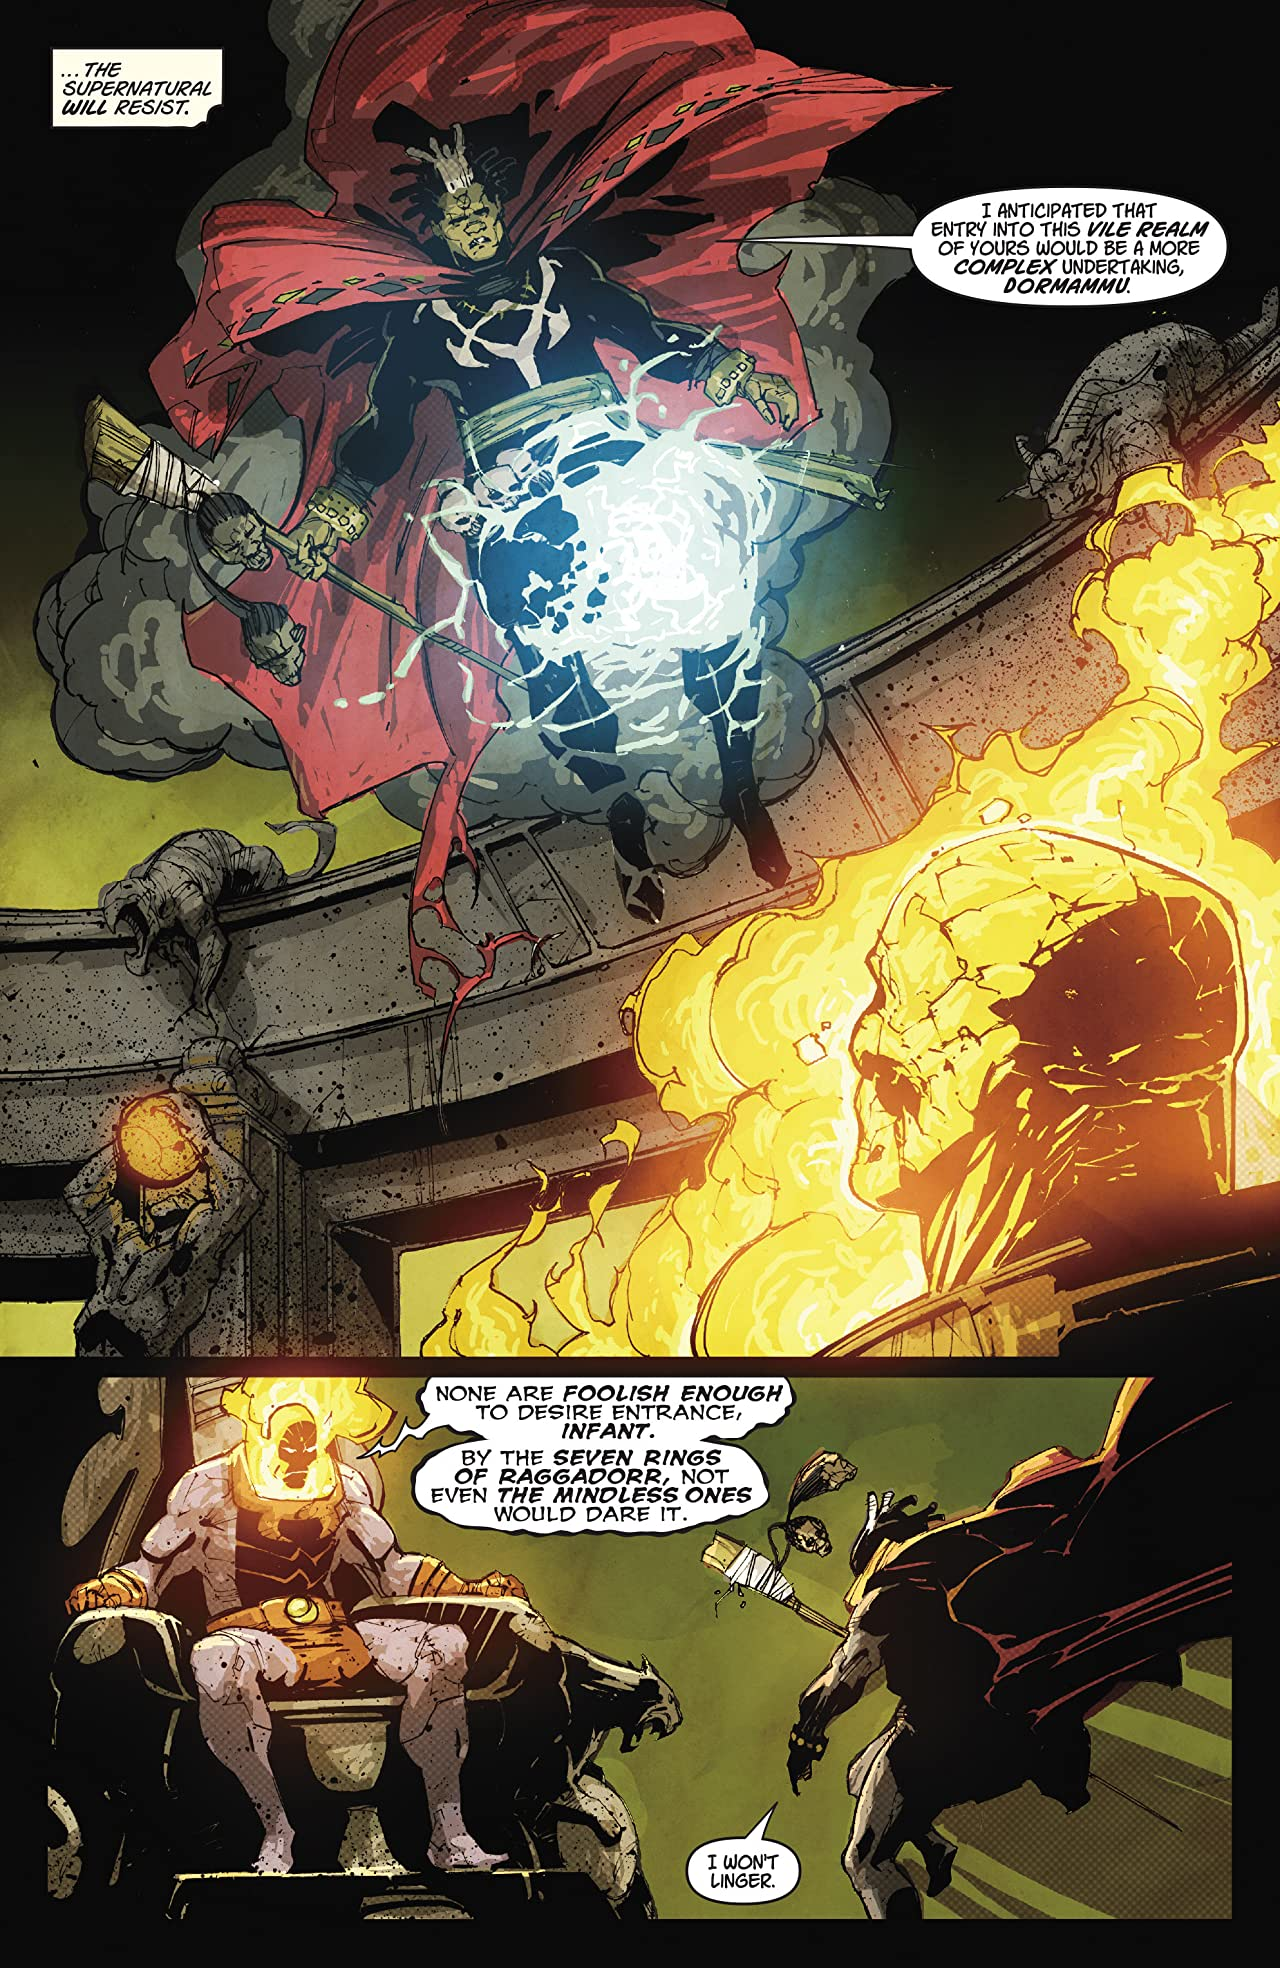 Doctor Voodoo: Avenger of the Supernatural (2009-2010) #1